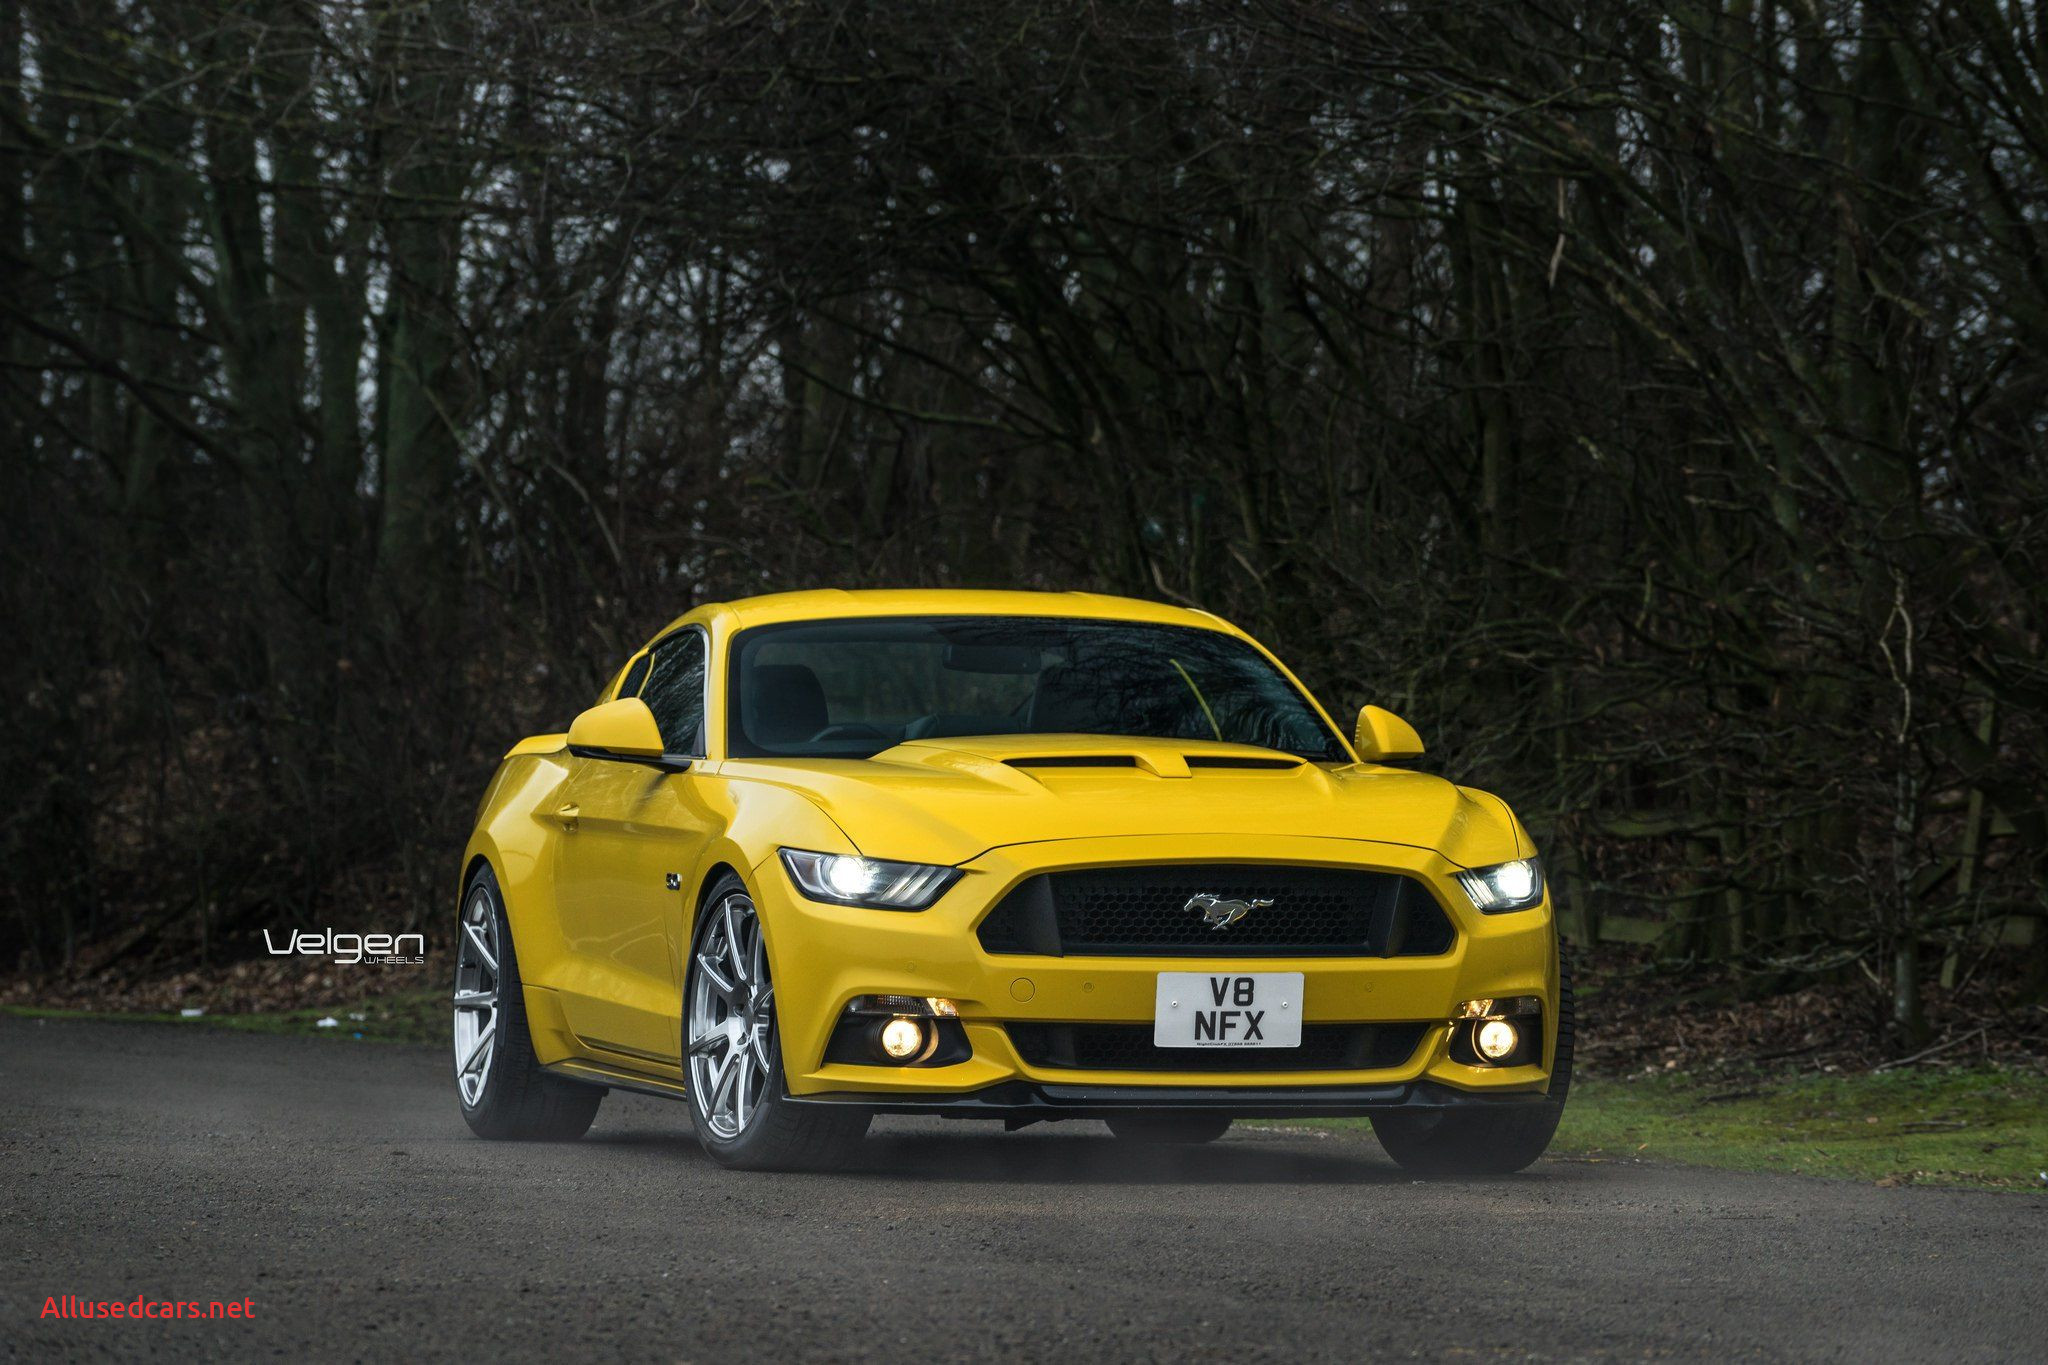 2016 ford Mustang Elegant Yellow ford Mustang Goes In Style with Custom Accessories